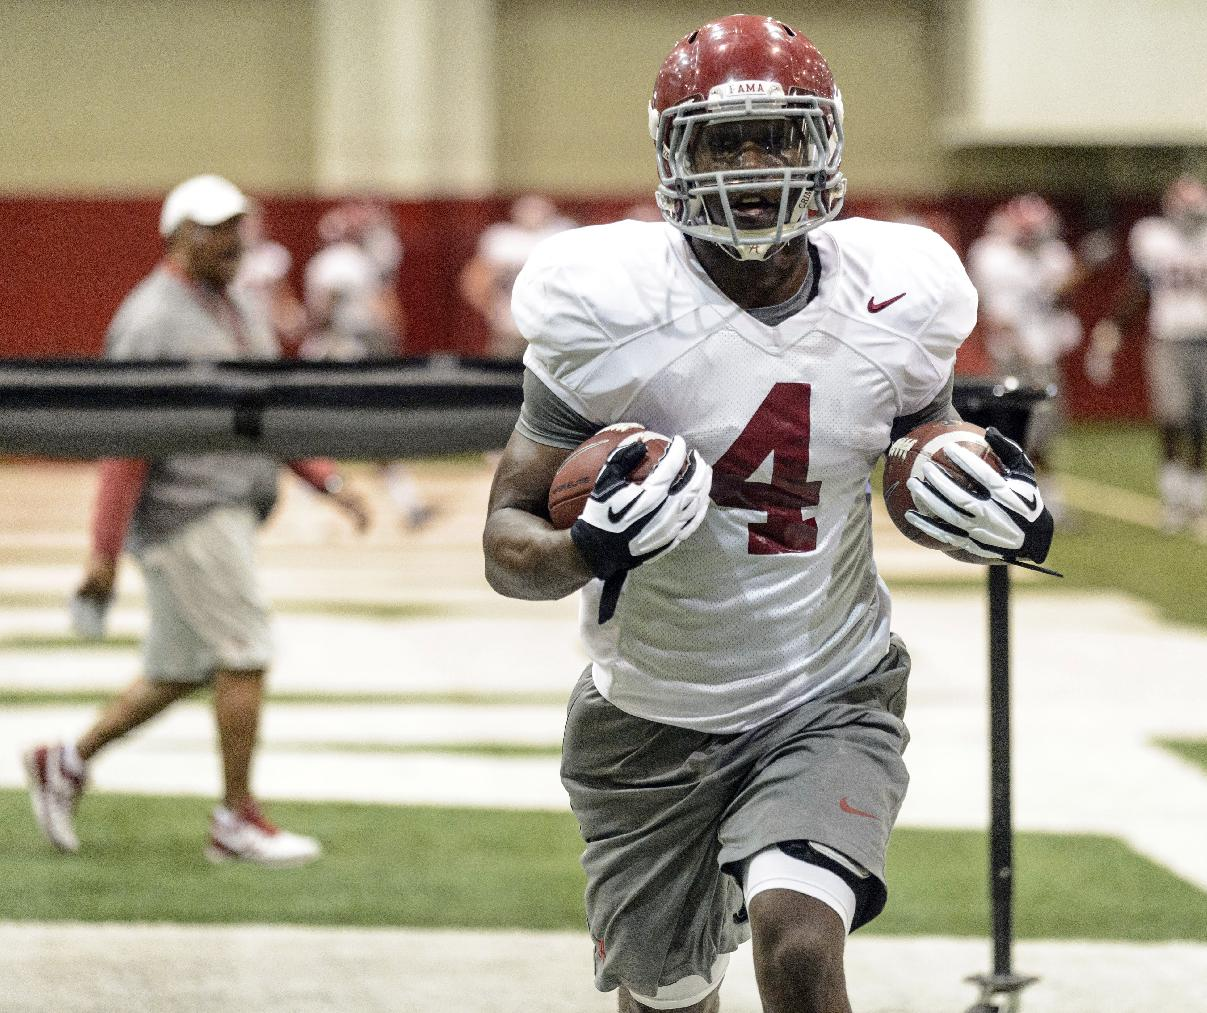 Alabama running back T.J. Yeldon (4) works through running back drills during NCAA college football practice on Friday, April 4, 2014, in Tuscaloosa, Ala